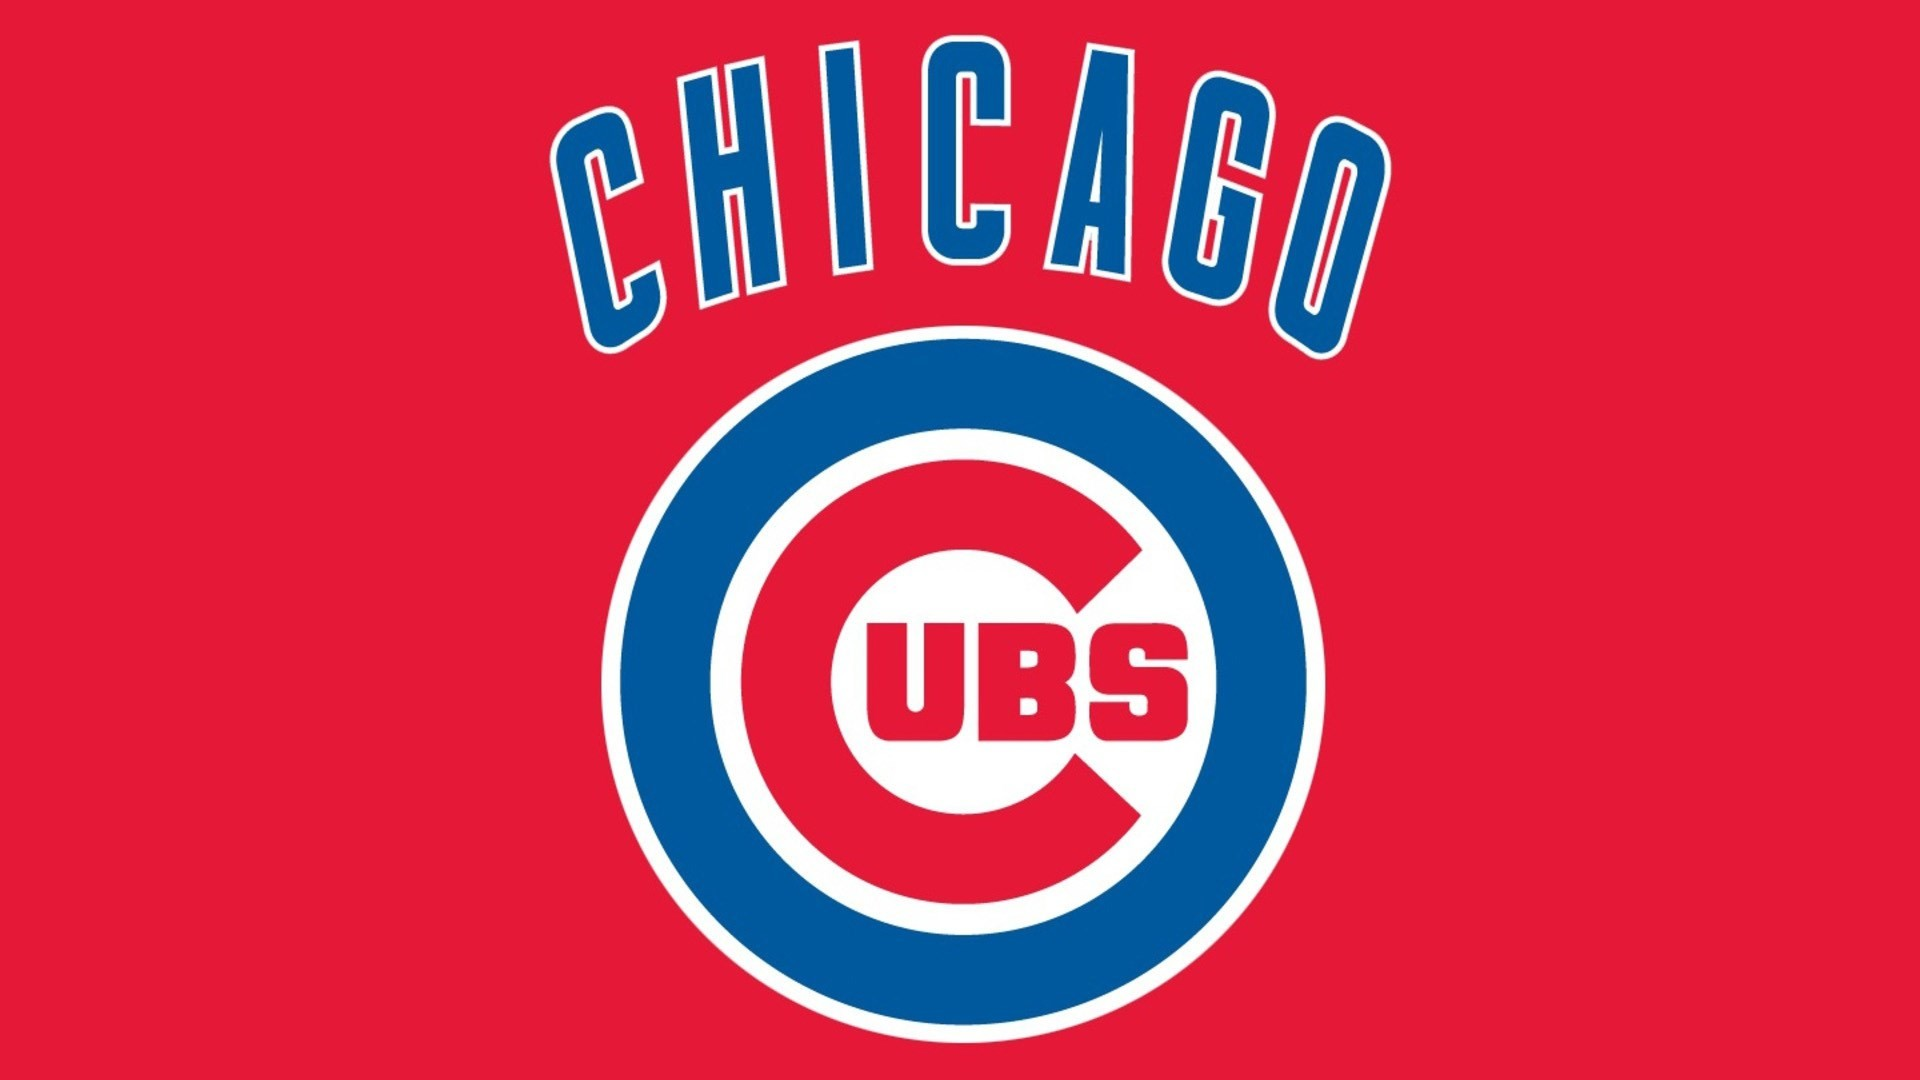 1920x1080 chicago cubs wallpaper free hd widescreen, 125 kB - Edgar Cook